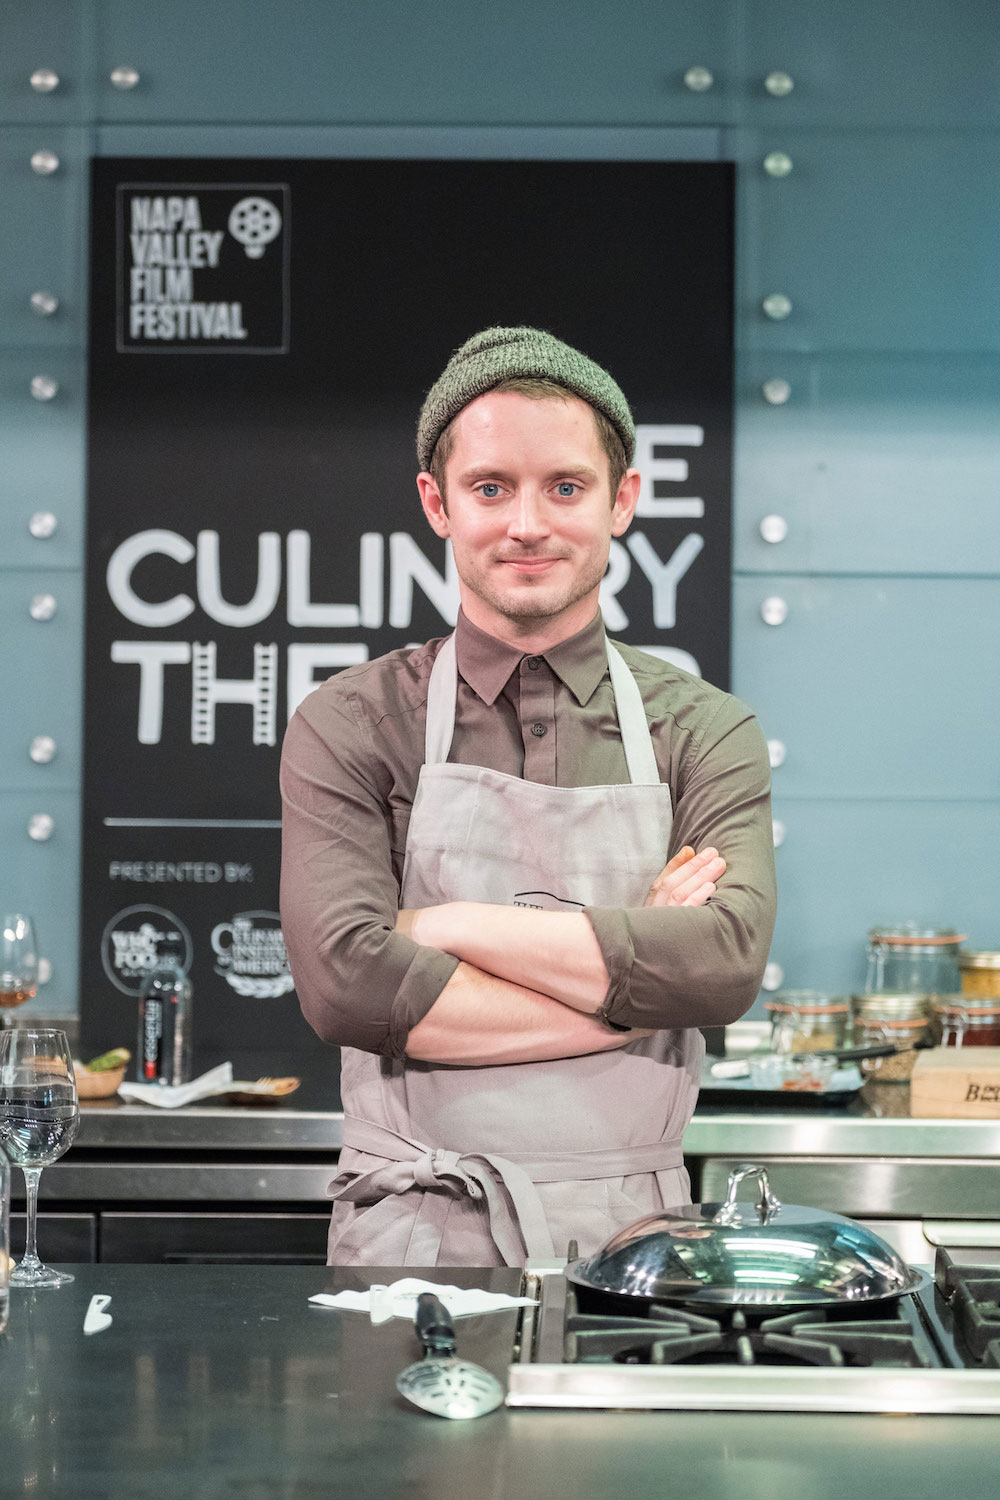 Elijah Wood at a culinary event